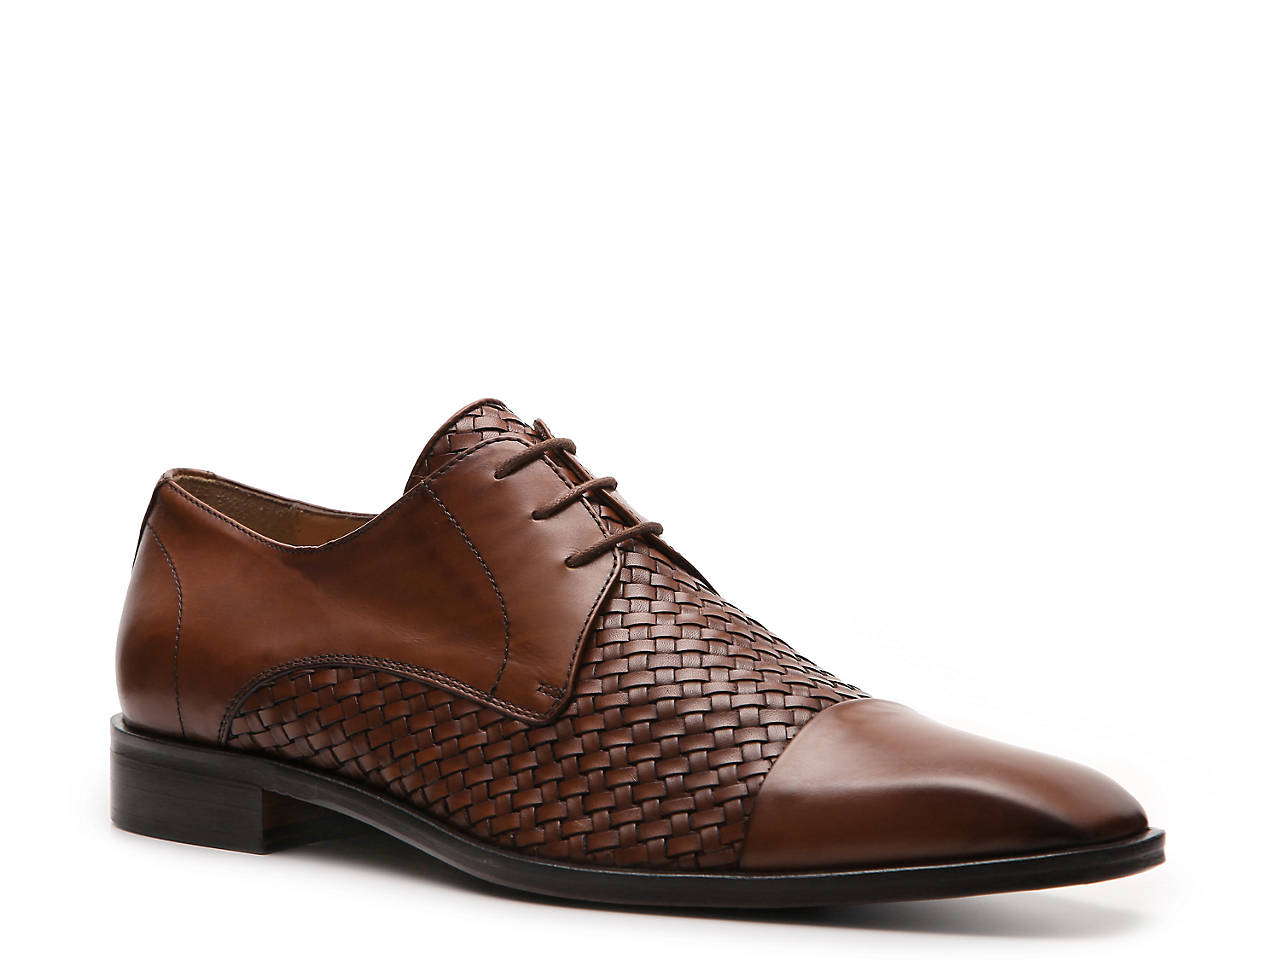 fd726ee237c Mercanti Fiorentini Woven Cap Toe Oxford Men s Shoes